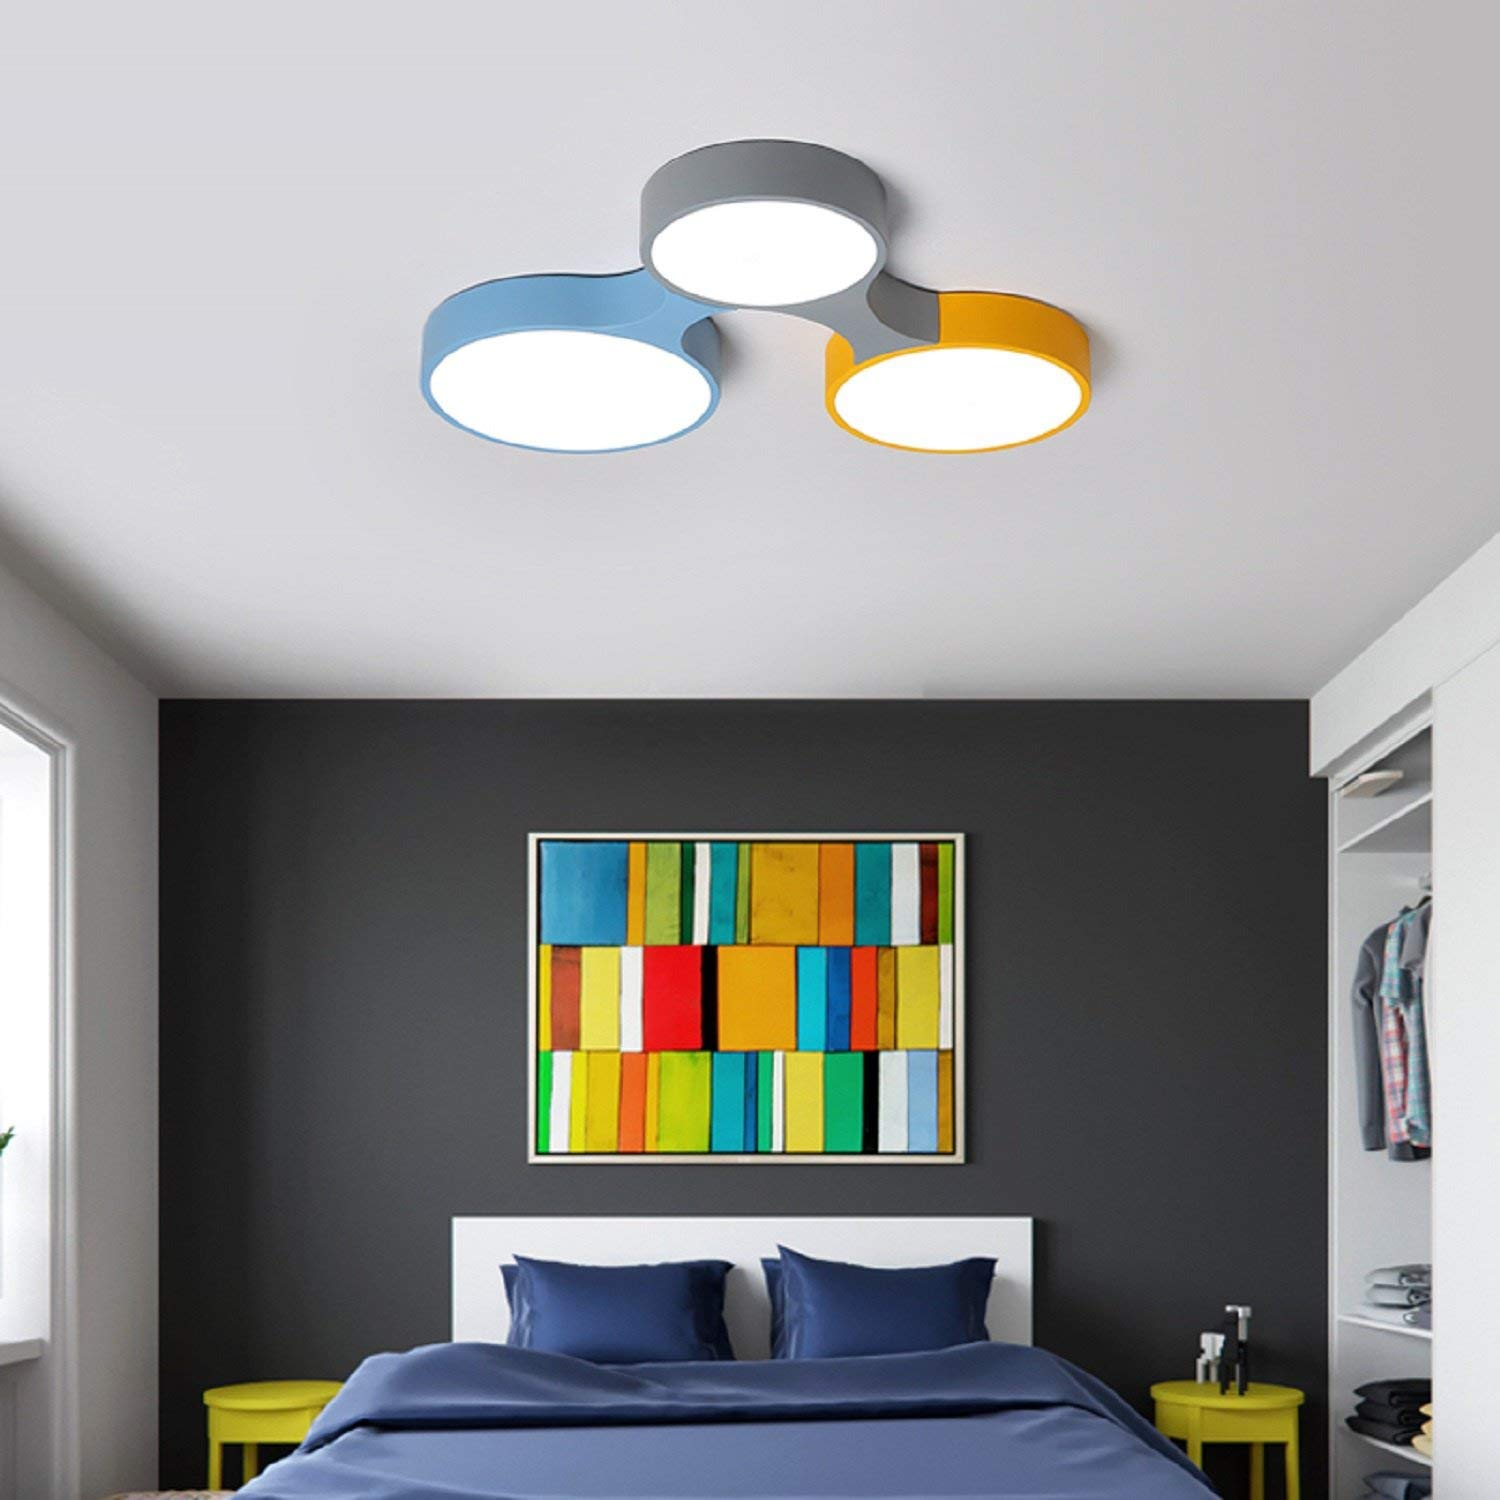 Waineg Nordic Designer 3 Head Colorful Round Acrylic Lampshade Ceiling Lamp Creative Children S Room Led